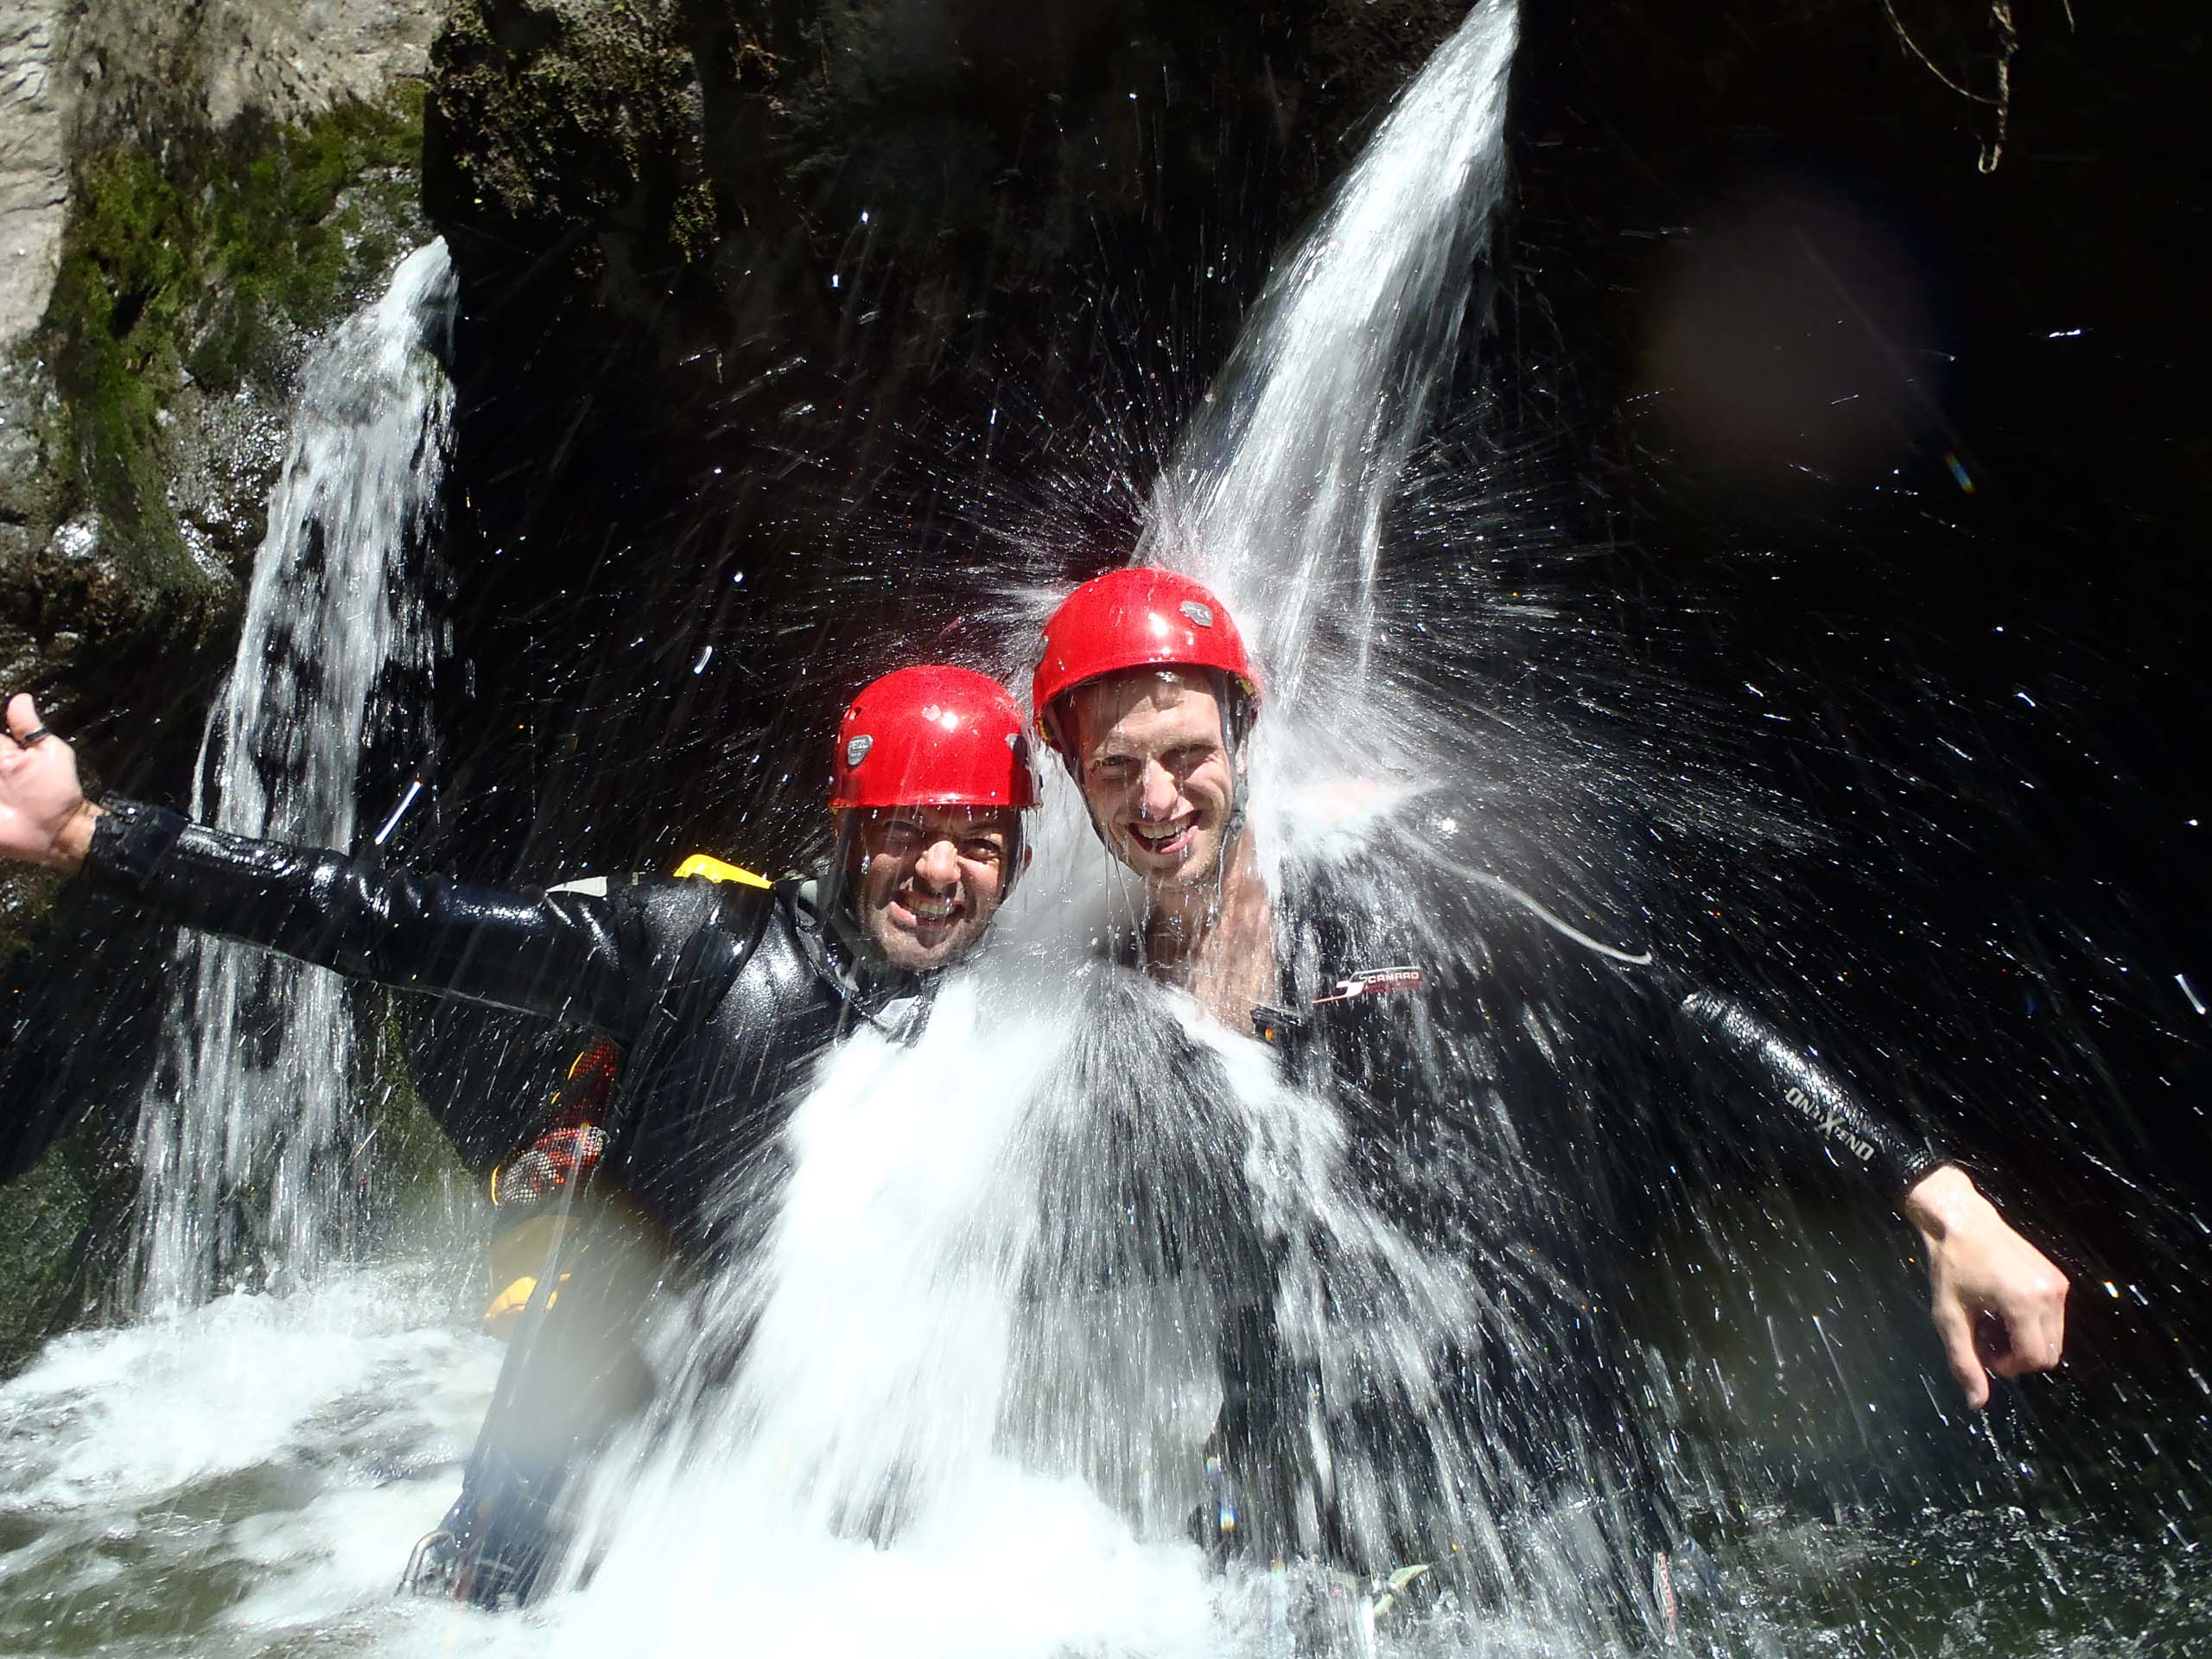 Canyoning - Mittlere u untere Auerklamm 106-1.jpg